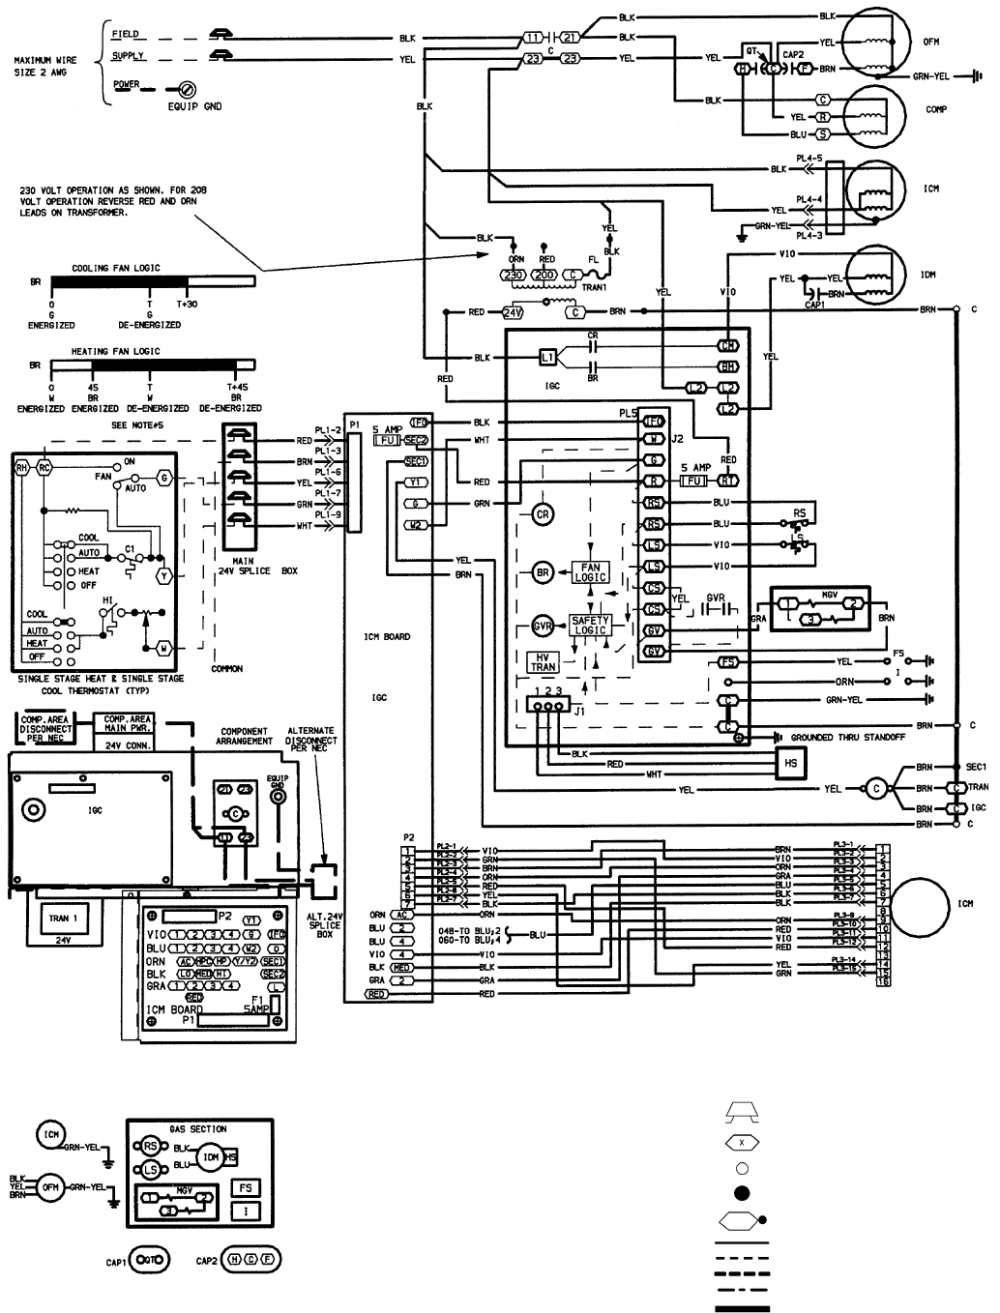 medium resolution of bryant 588a 589a fig 30 208 230 1 60 wiring diagram units 589a048